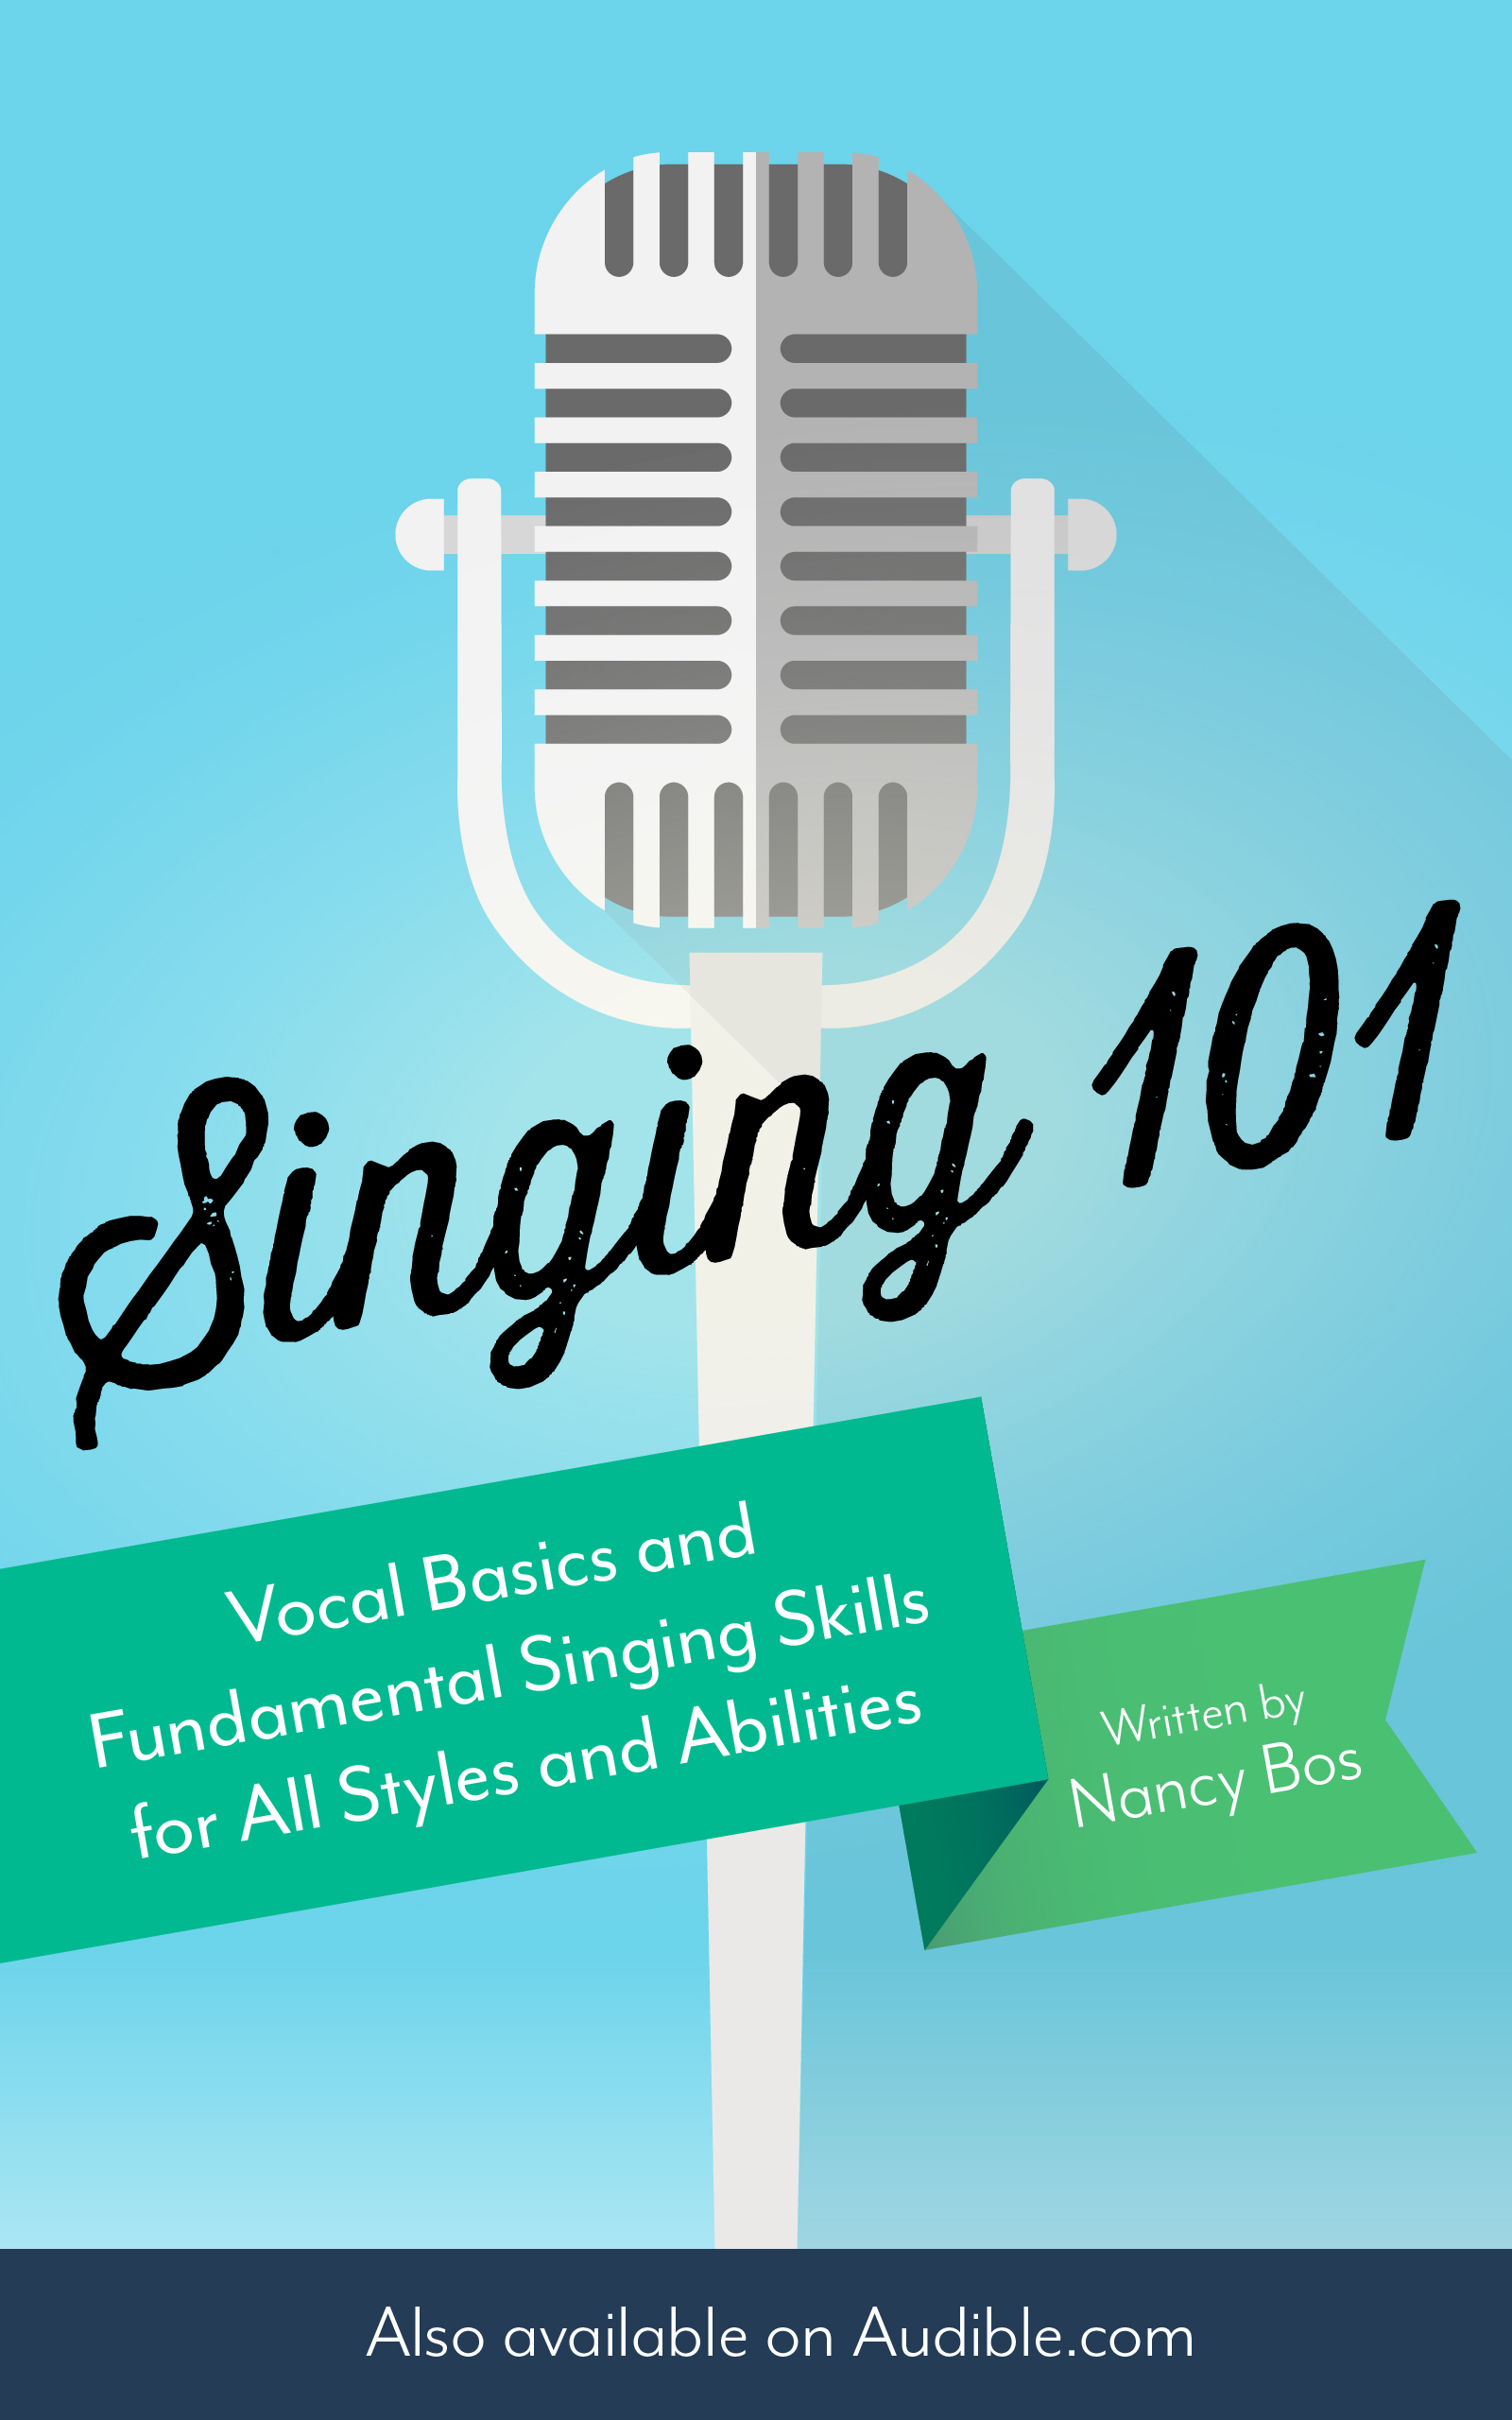 Singing 101: Vocal Basics and Fundamental Singing Skills for All Styles and Abilities -